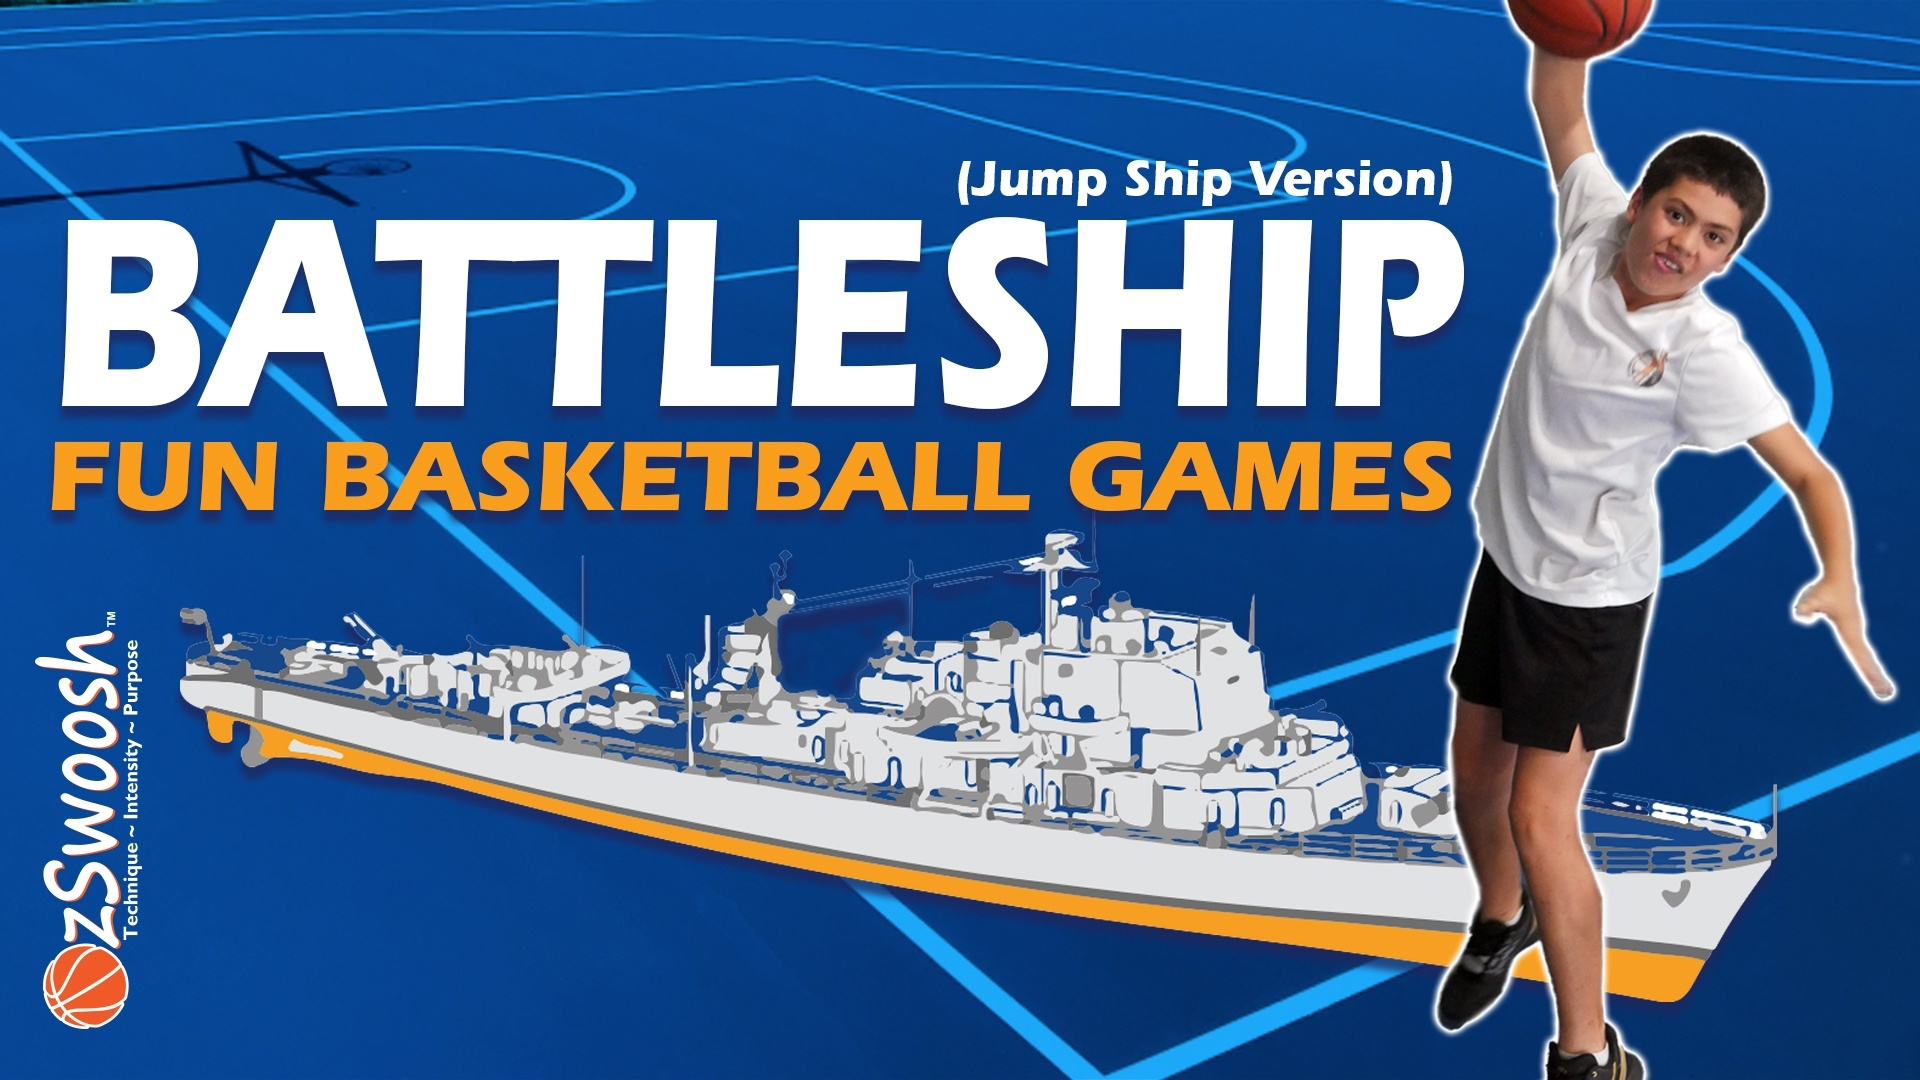 Fun Youth Basketball Drills For Kids - Battleship Jump Ship (Shooting Game)